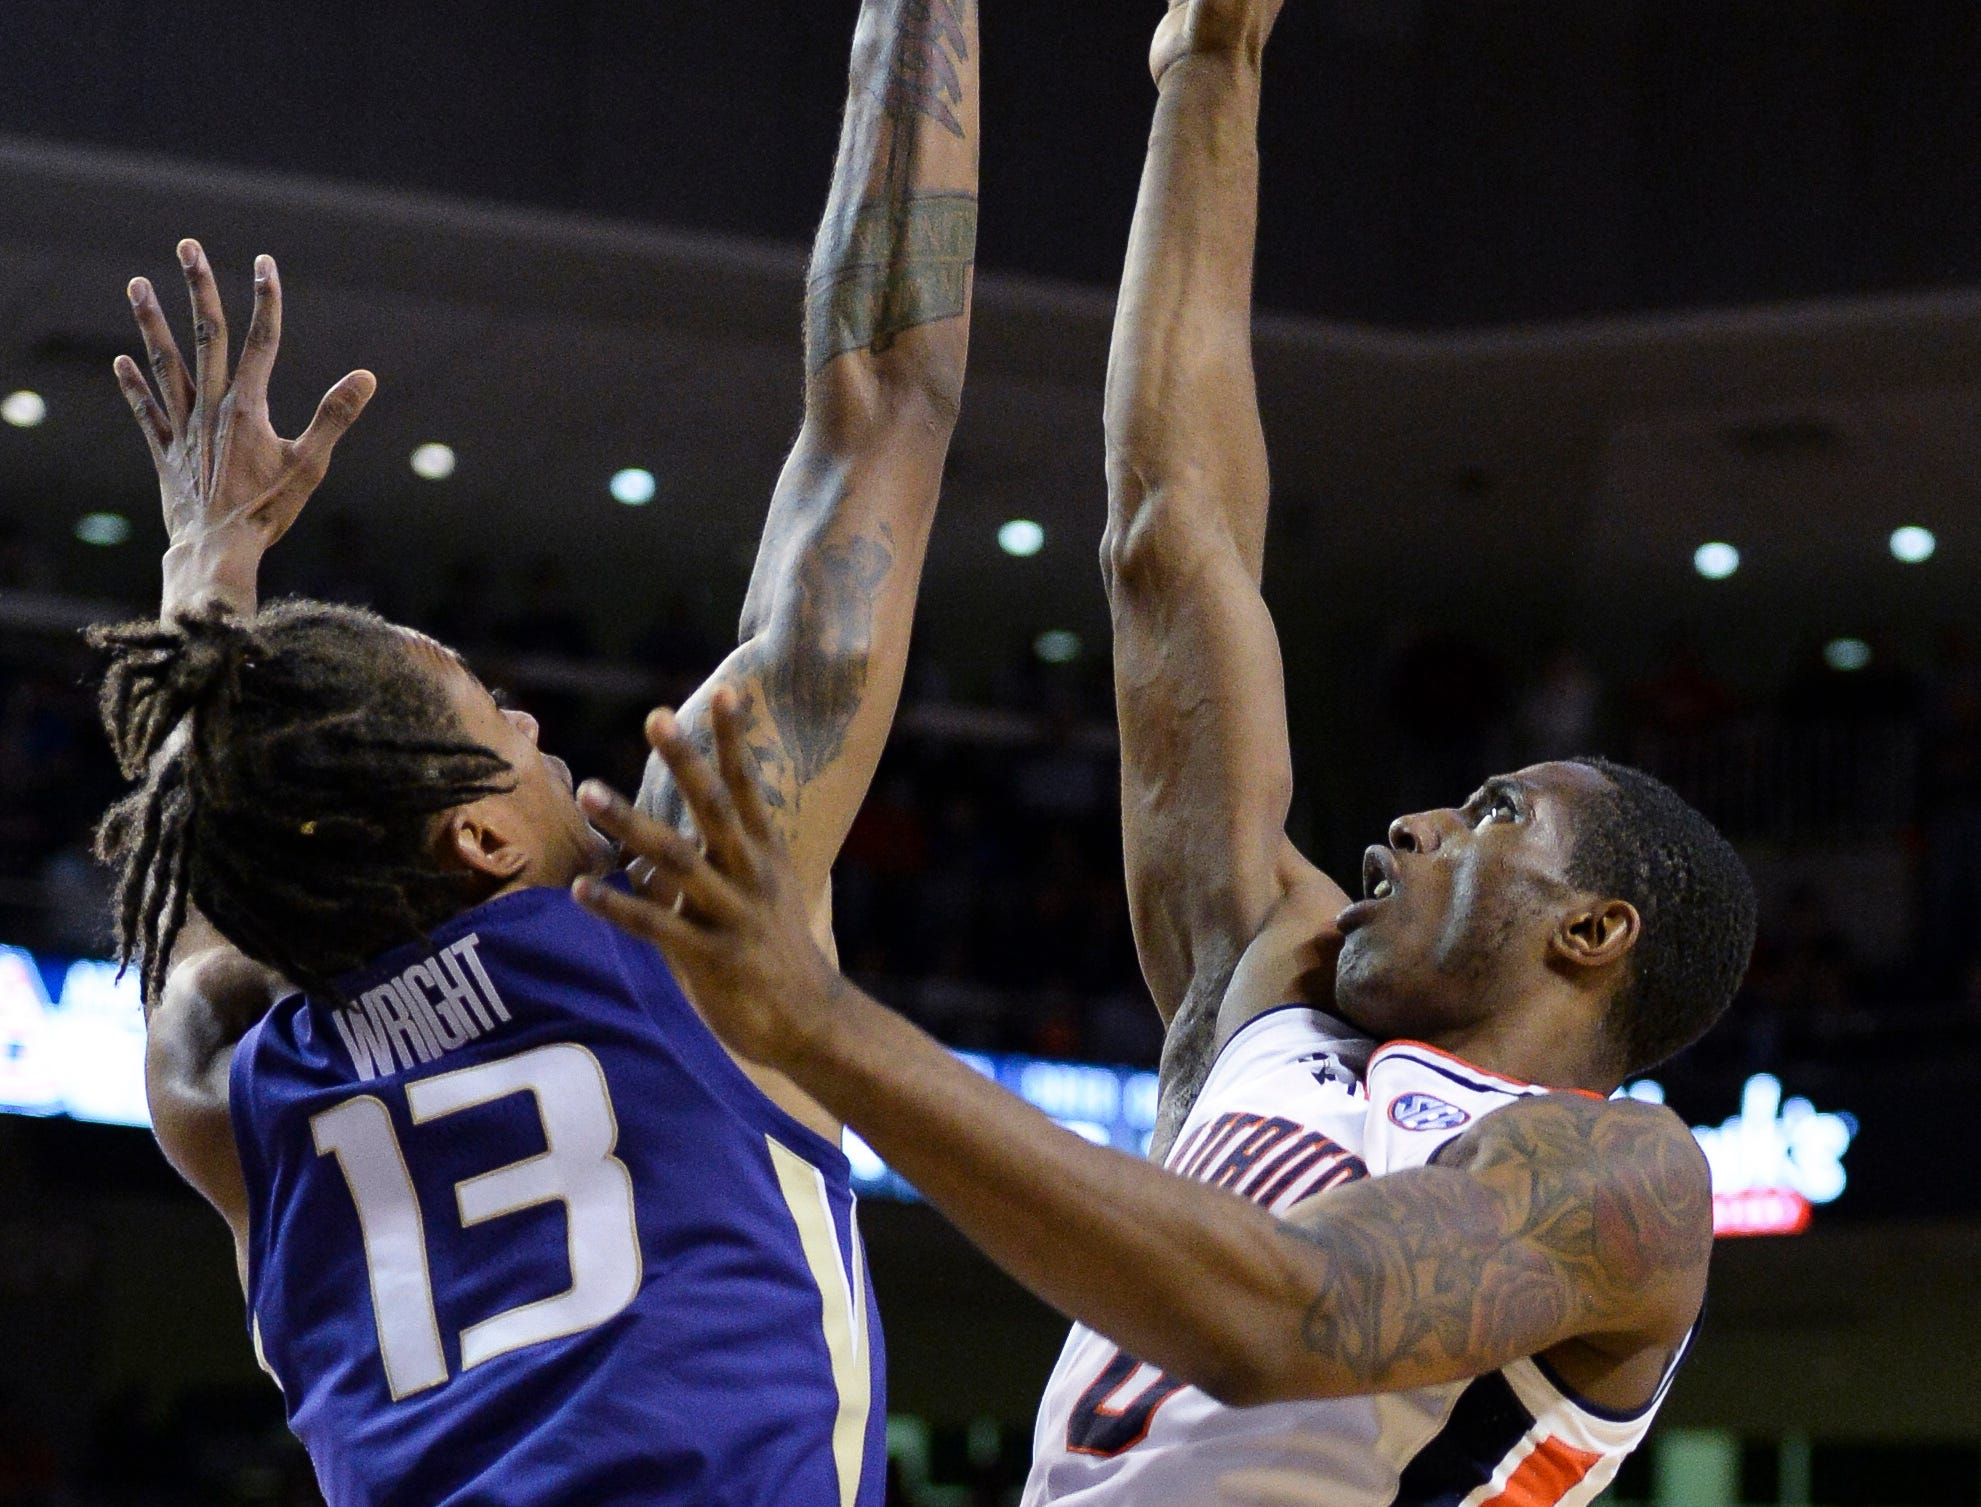 Nov 9, 2018; Auburn, AL, USA; Washington Huskies forward Hameir Wright (13) blocks a shot by Auburn Tigers forward Horace Spencer (0) at Auburn Arena. Mandatory Credit: Julie Bennett-USA TODAY Sports